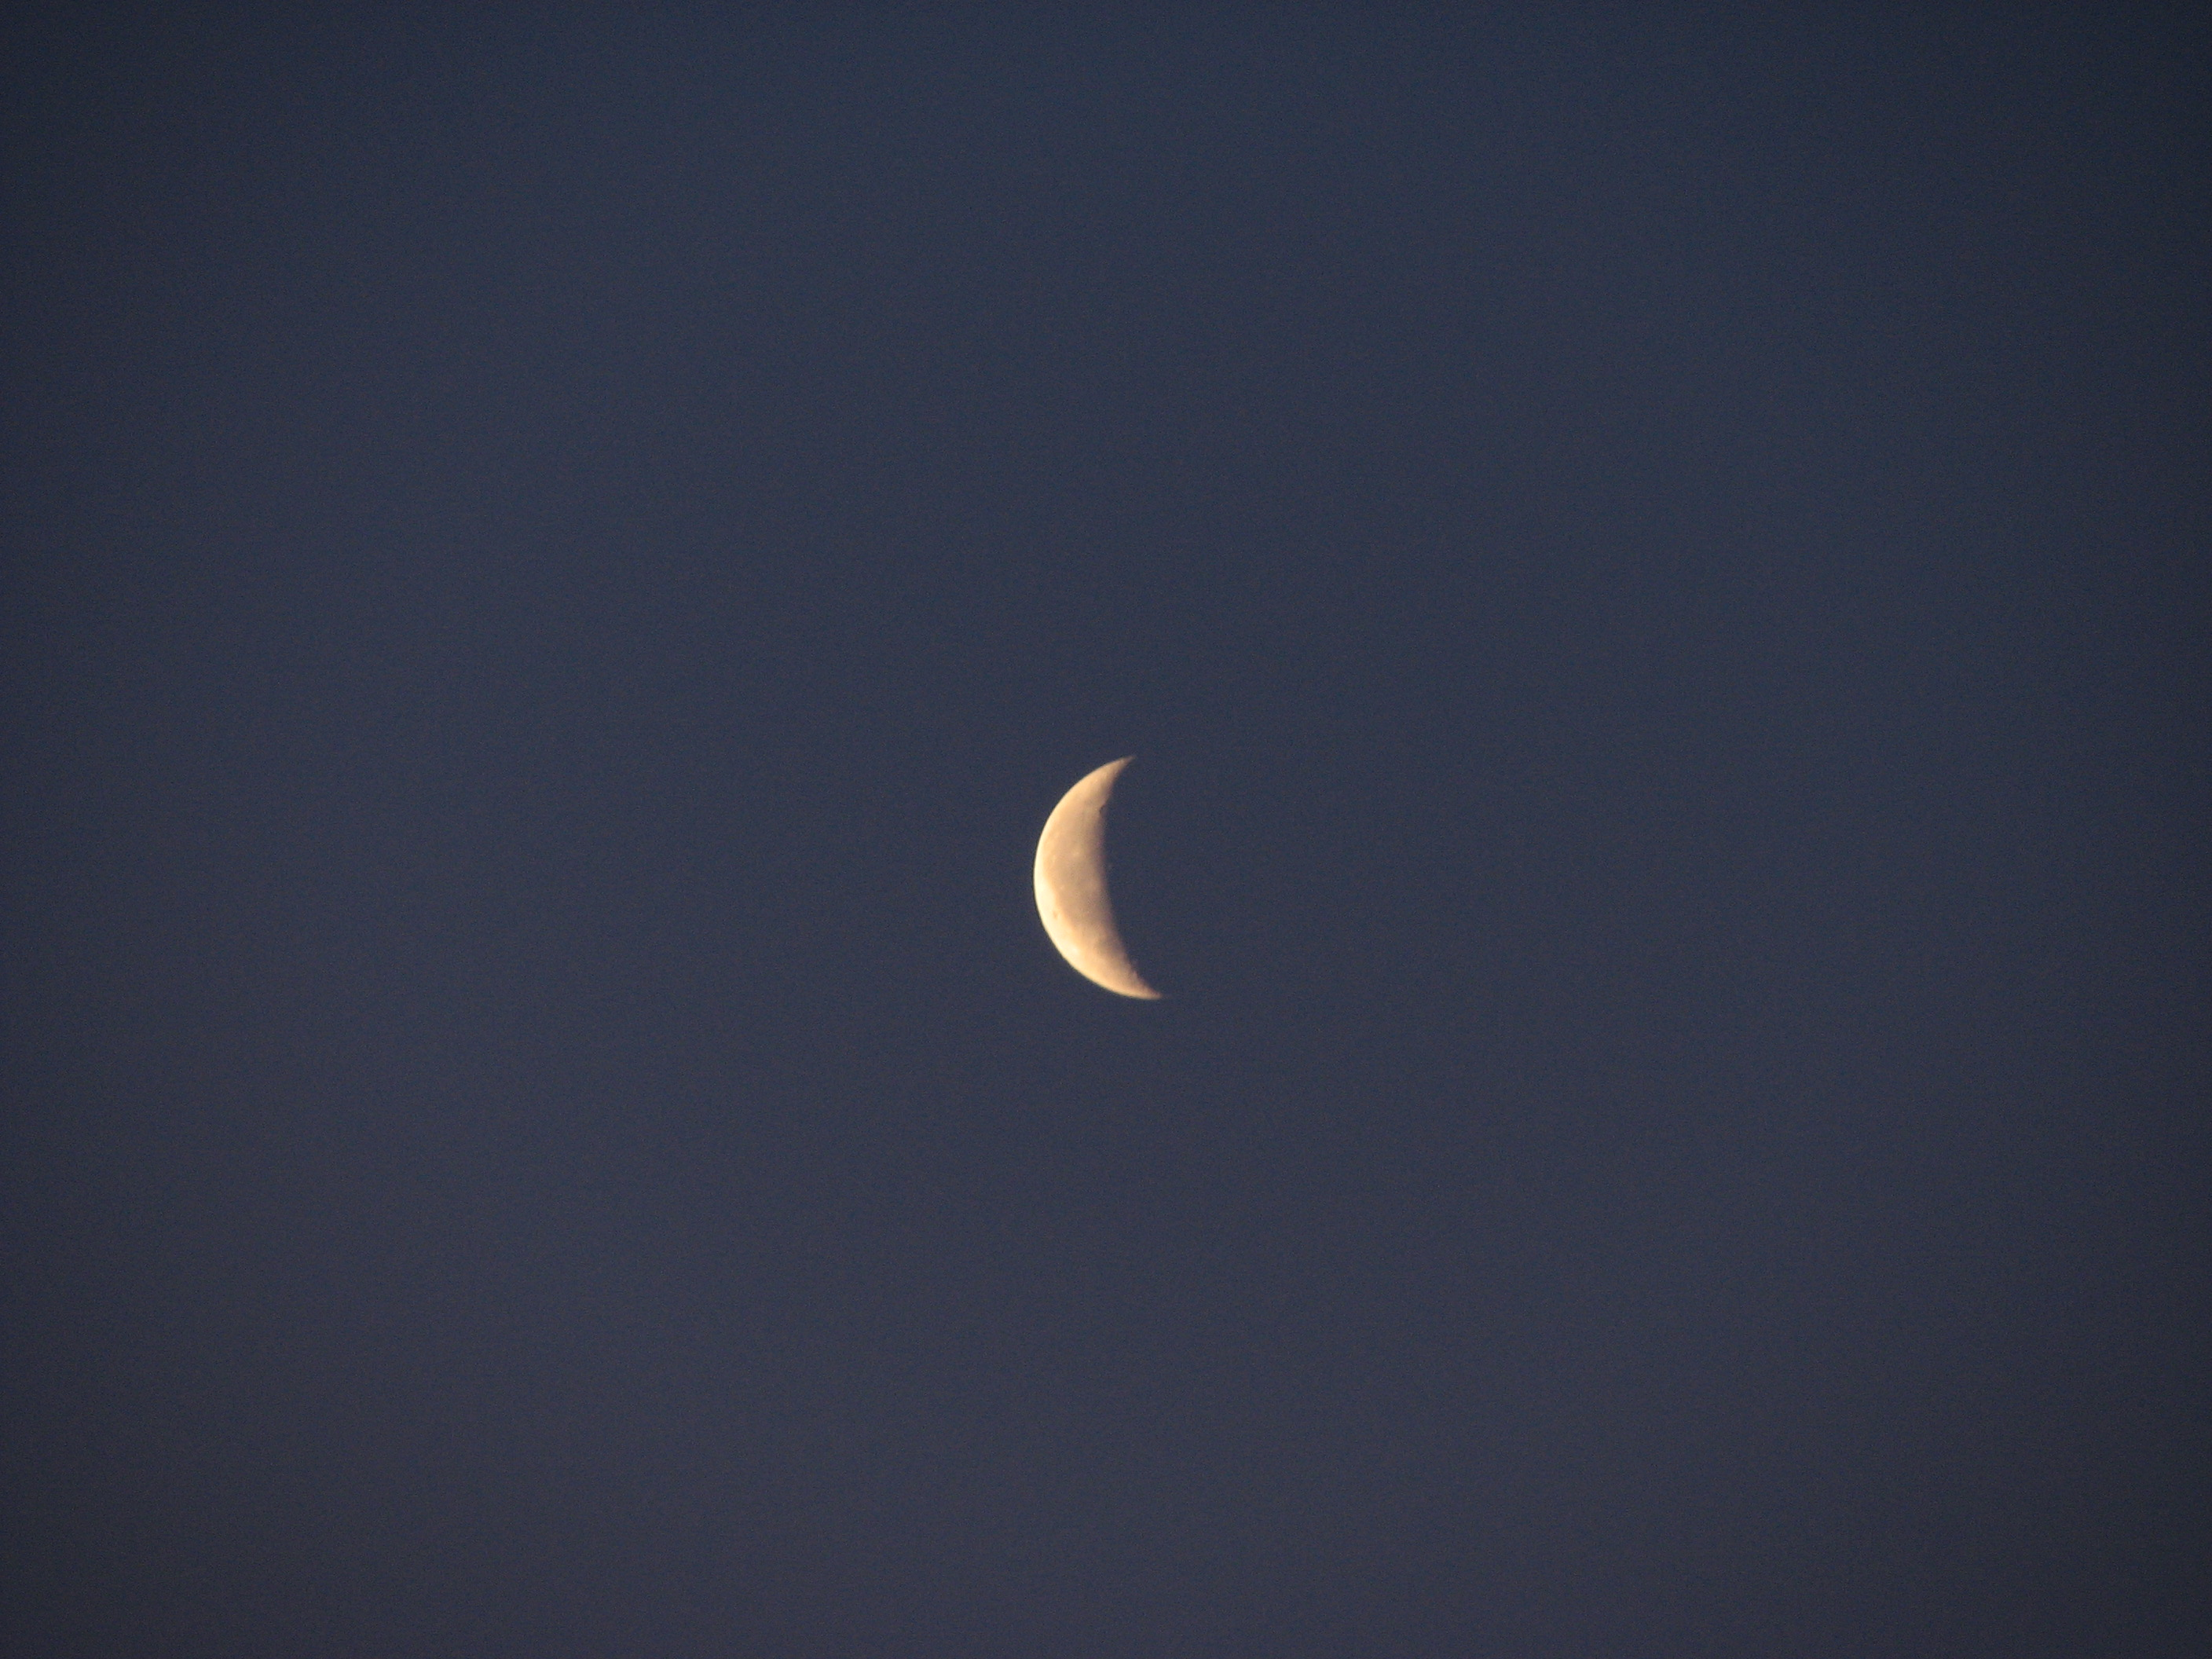 Crescent Moon HD Wallpapers free